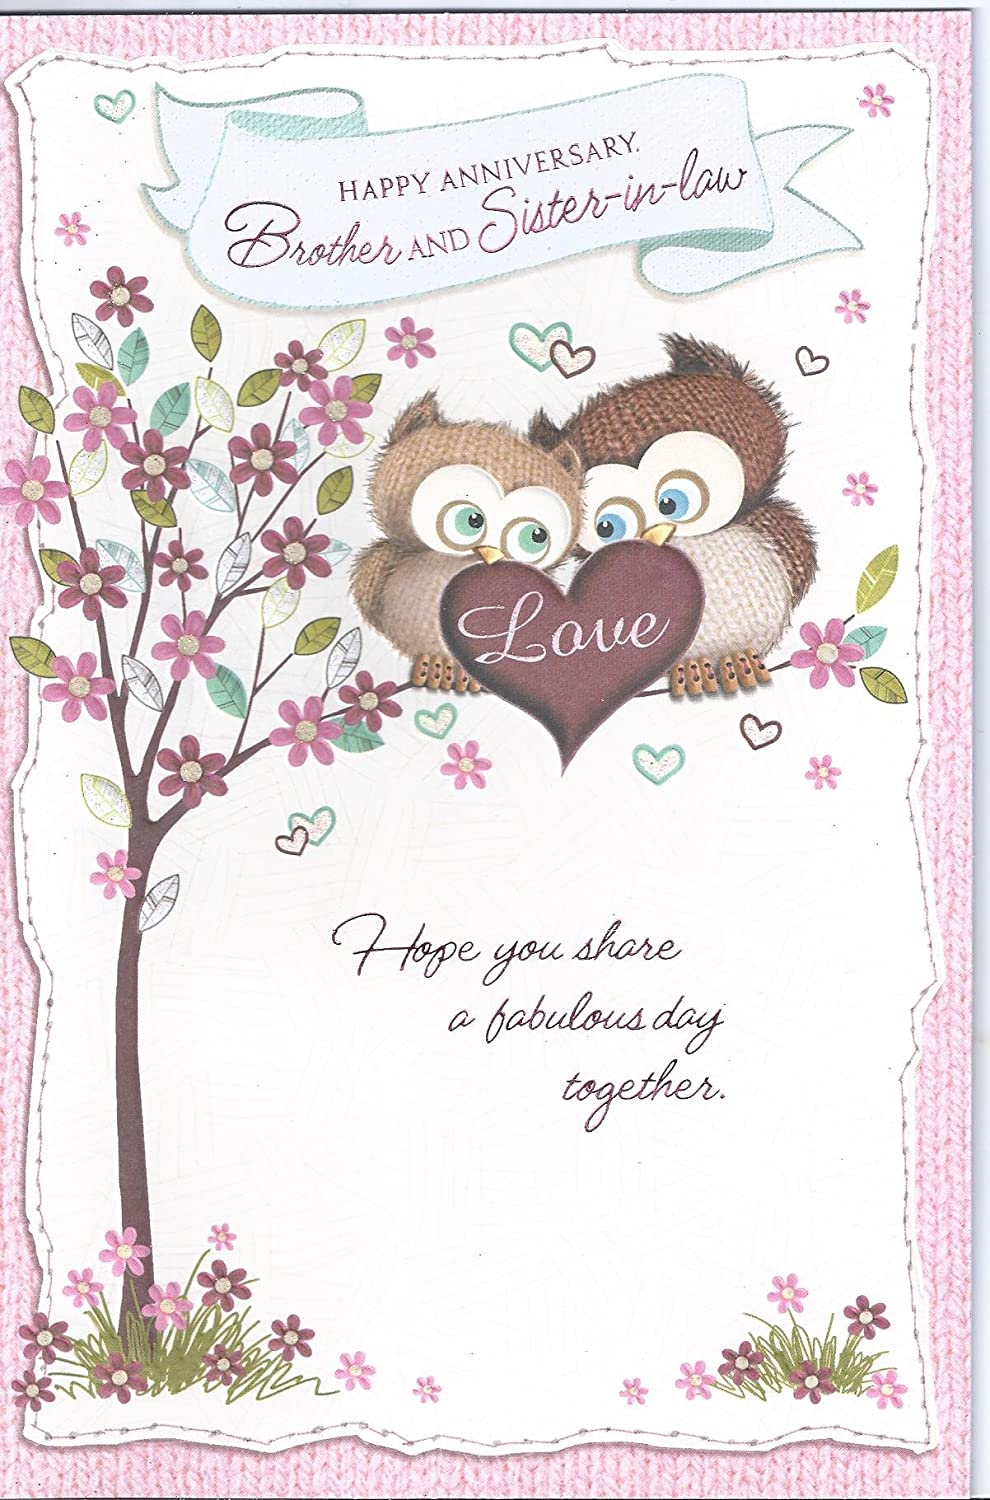 Happy anniversary brother sister in law wedding wishes greetings happy anniversary brother sister in law wedding wishes greetings card owls amazon office products m4hsunfo